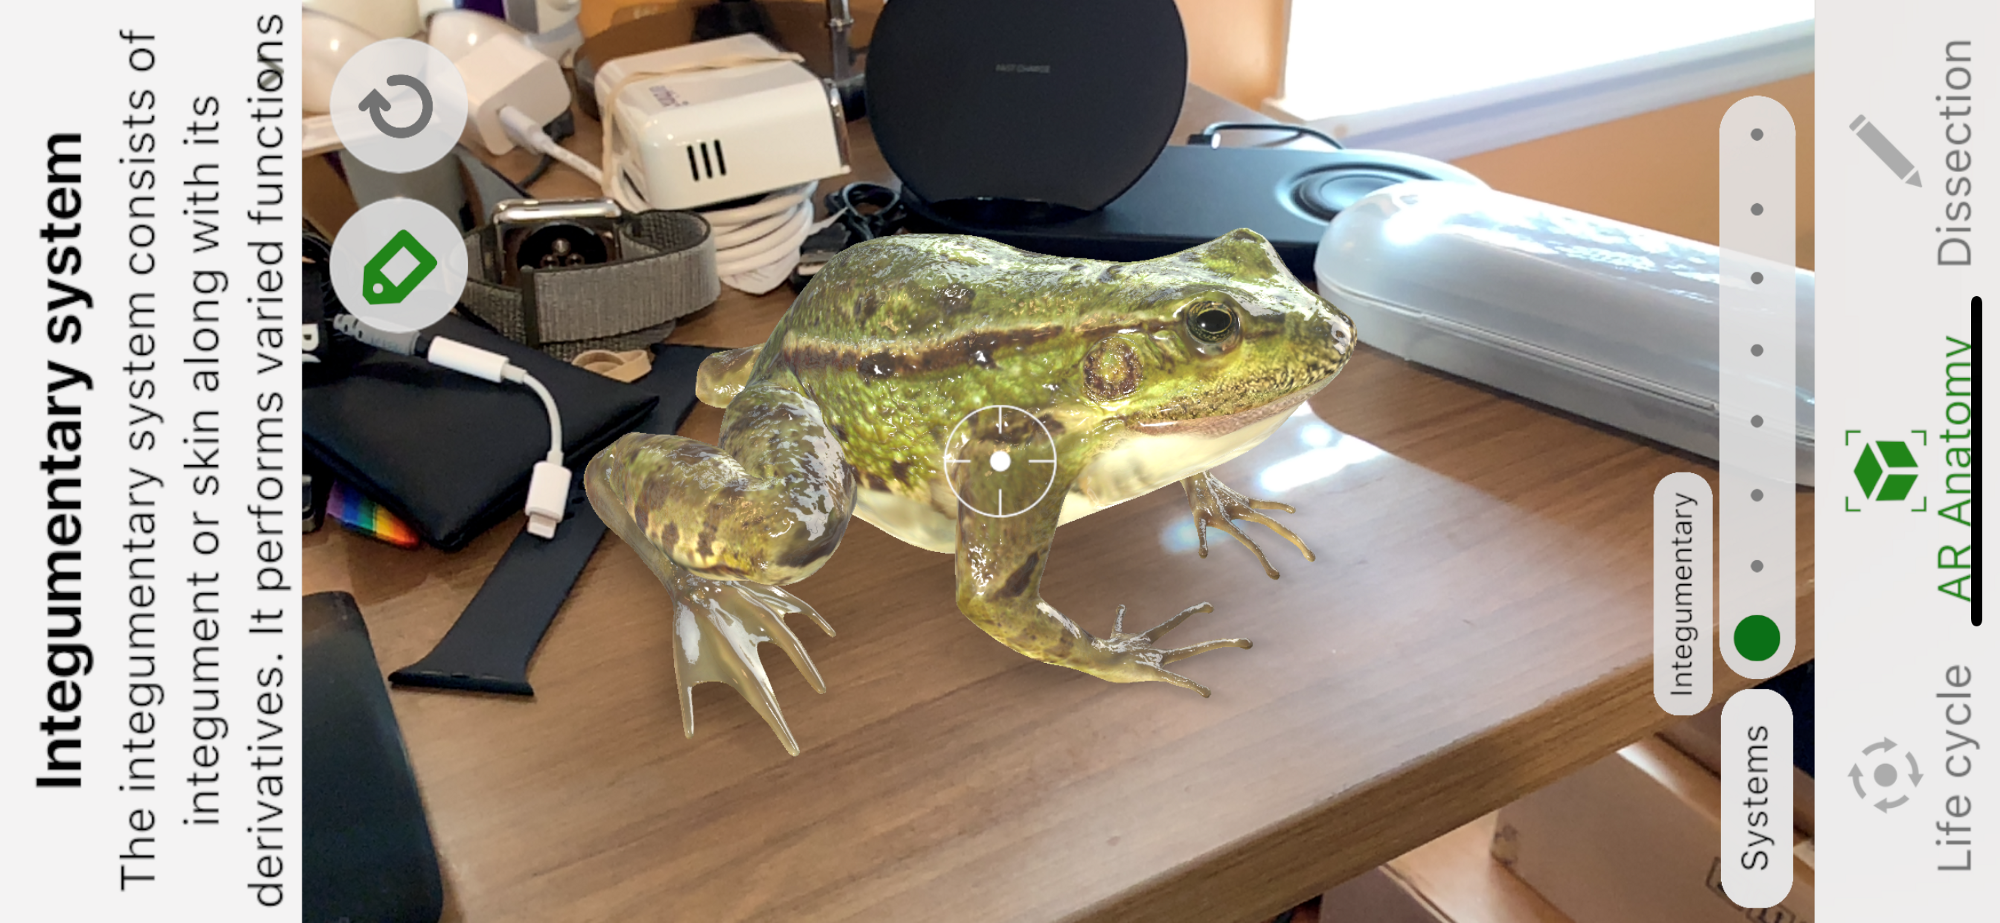 Apples New Iphones Are Simply Excellent Member Feature Stories Apple Lightning Cable Wiring Diagram With Froggipedia I Put This Life Like Frog On My Desk Image Lance Ulanoff